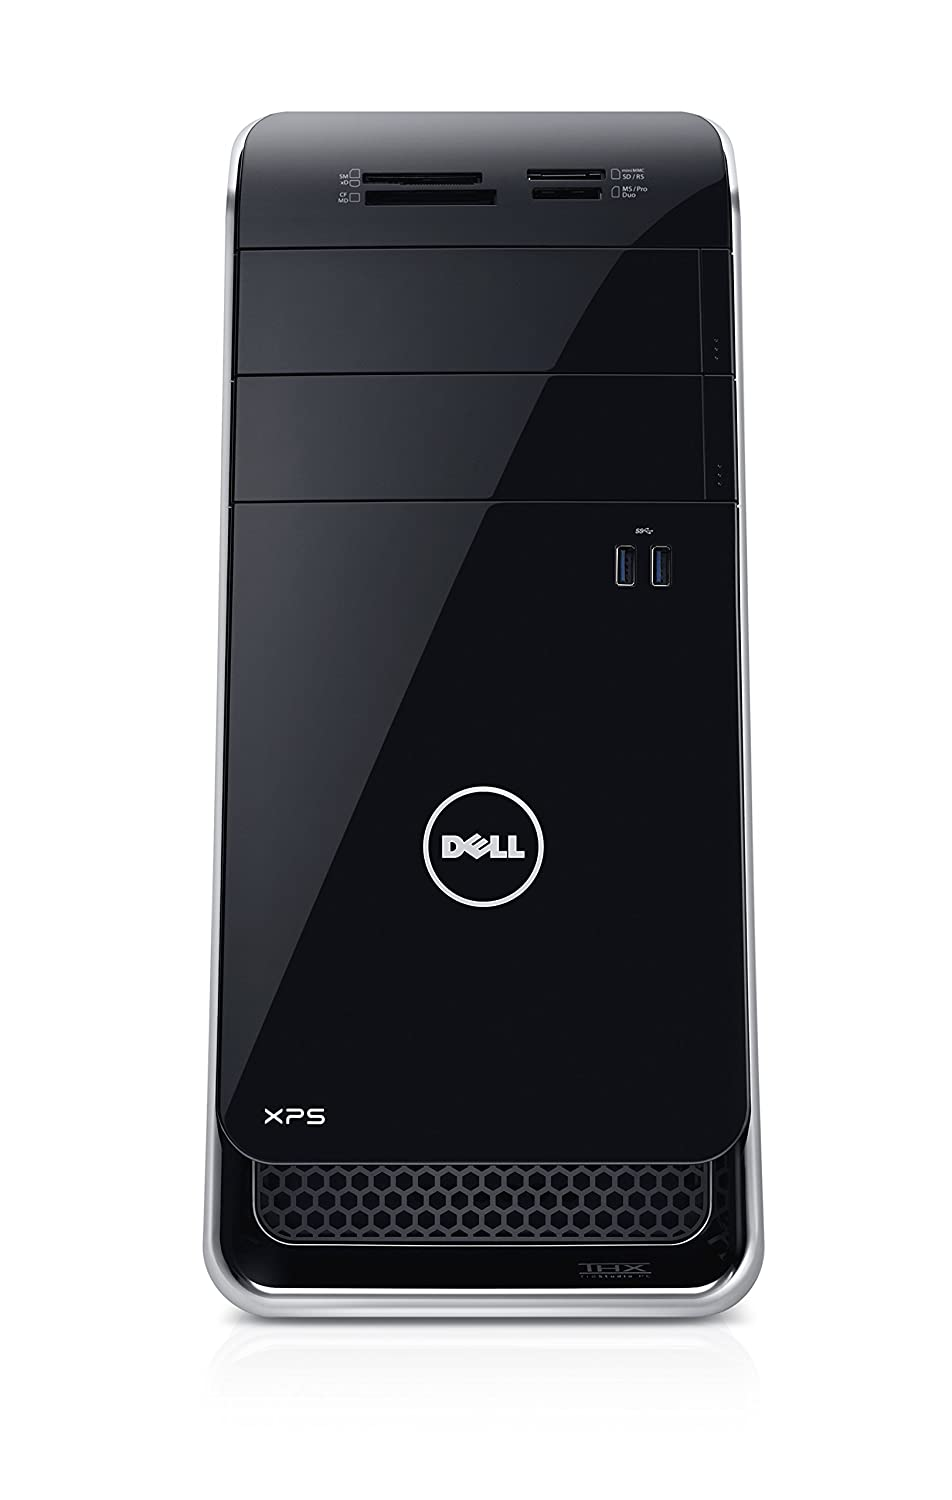 ... Ordenador de sobremesa (4 GHz, 6ª Generación de procesadores Intel® CoreTM i7, 16 GB, 2032 GB, DVD Super Multi, Windows 10 Home): Amazon.es: Informática